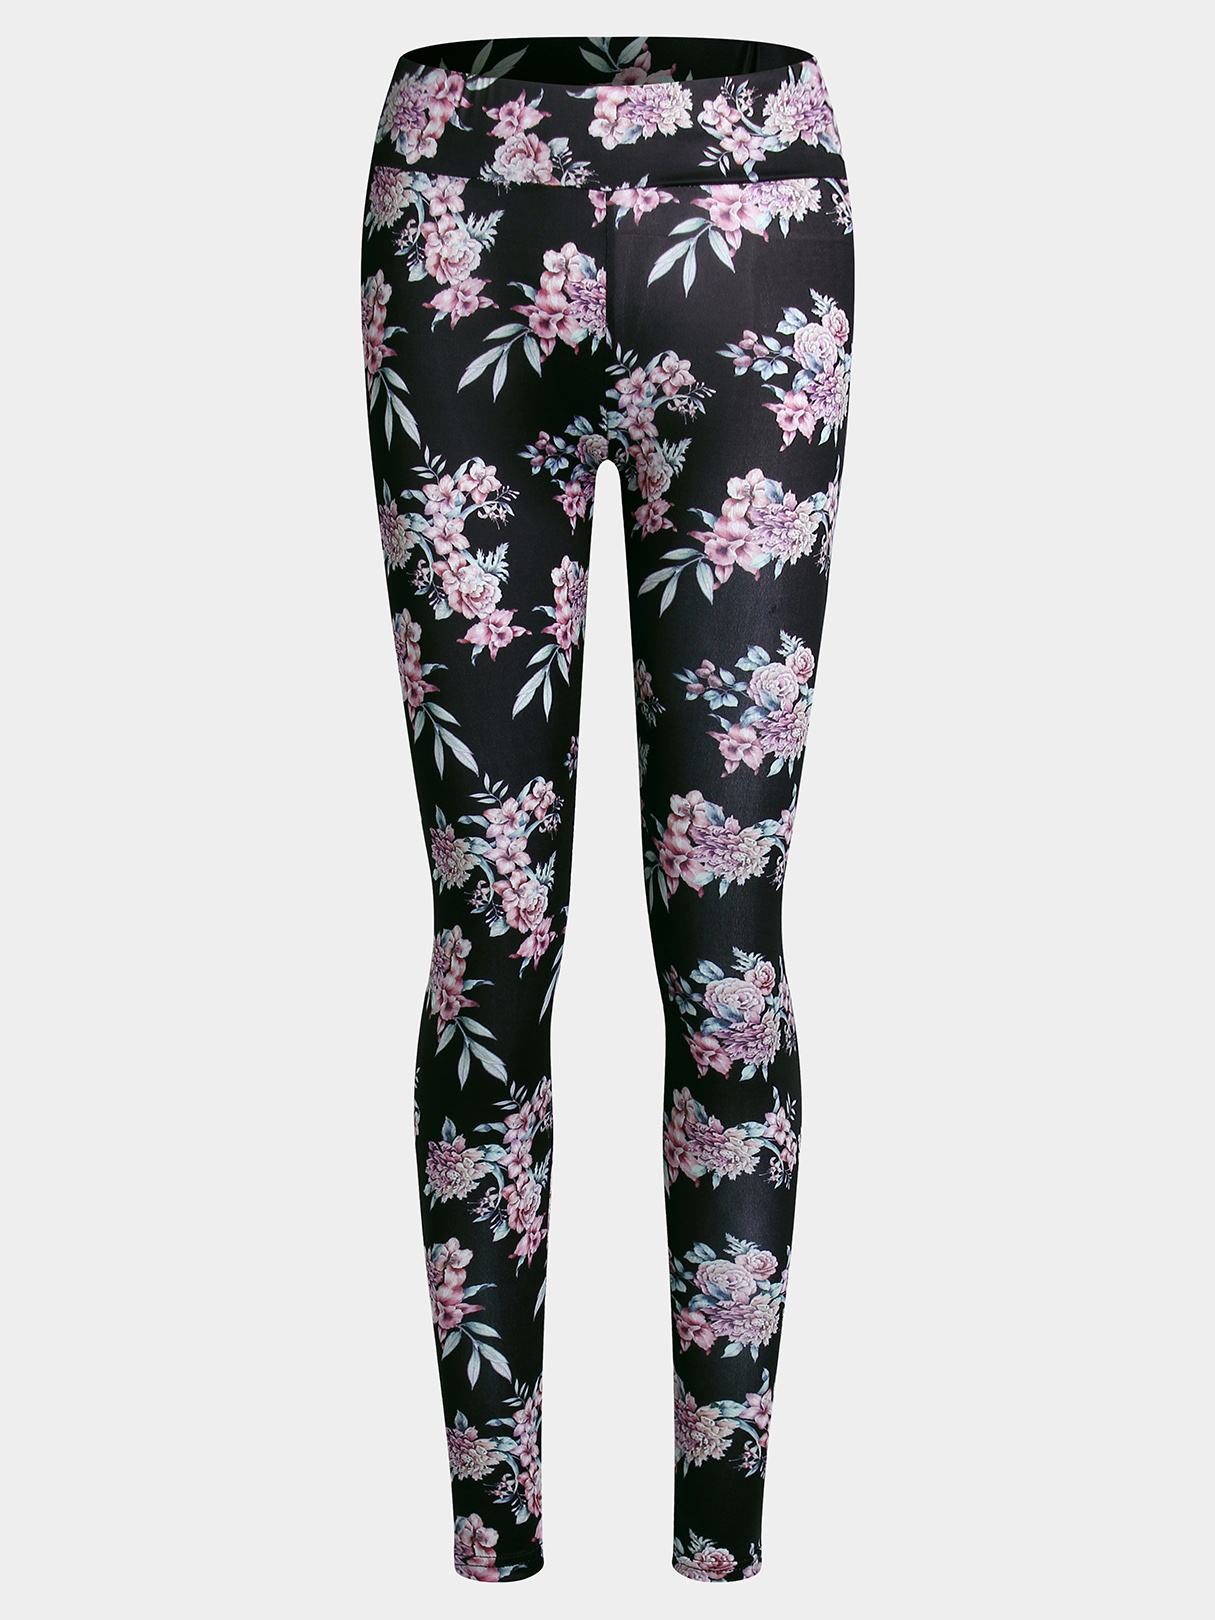 Active Random Floral Print Yoga Legging in Black